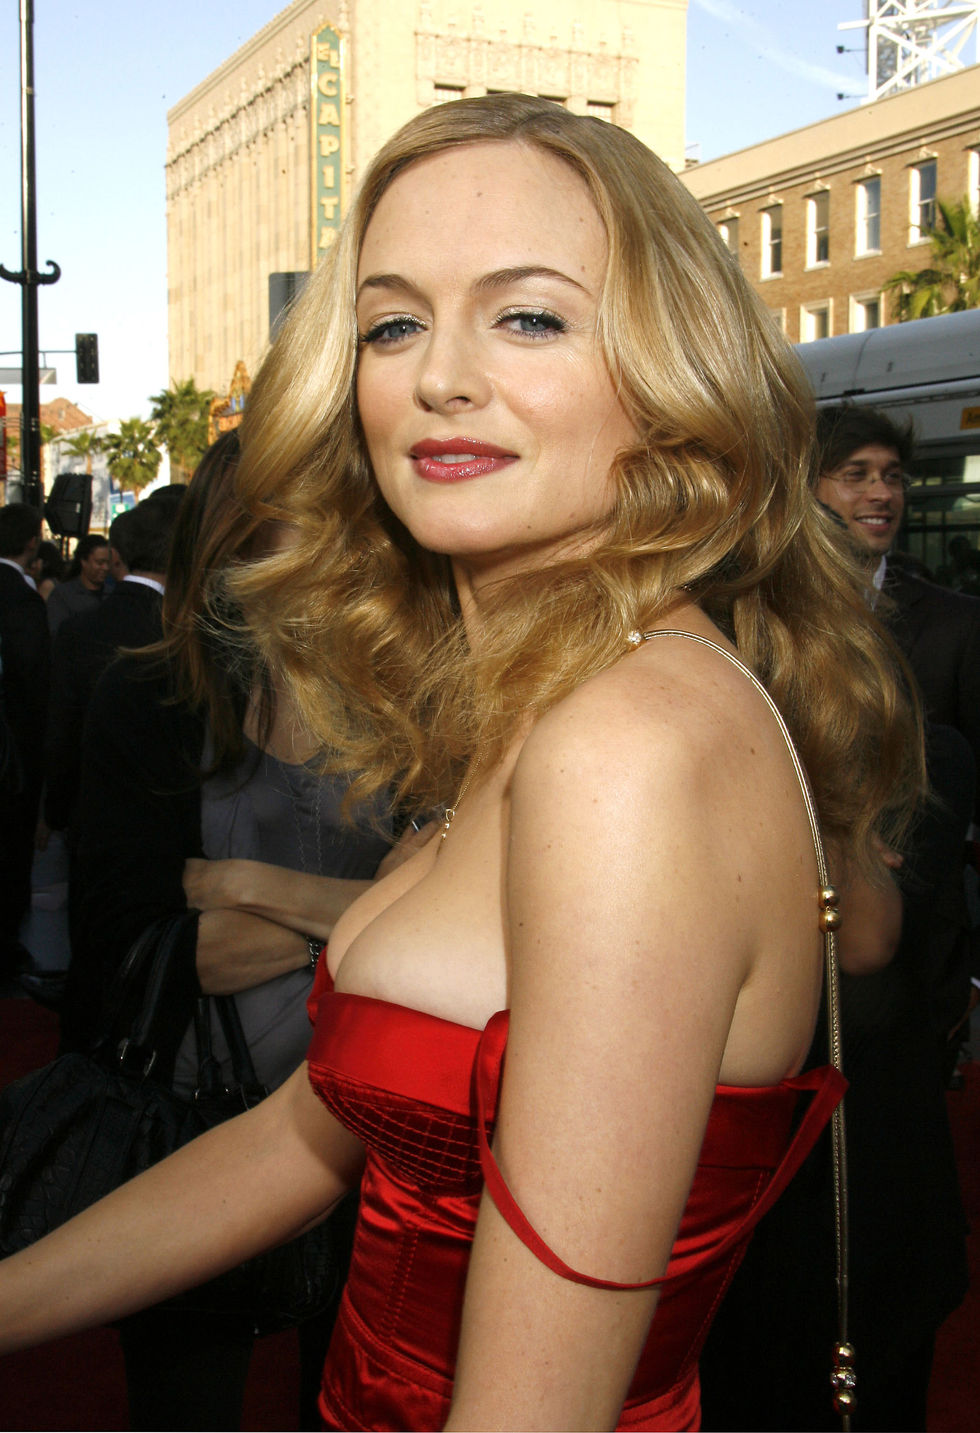 heather-graham-the-hangover-premiere-in-los-angeles-01